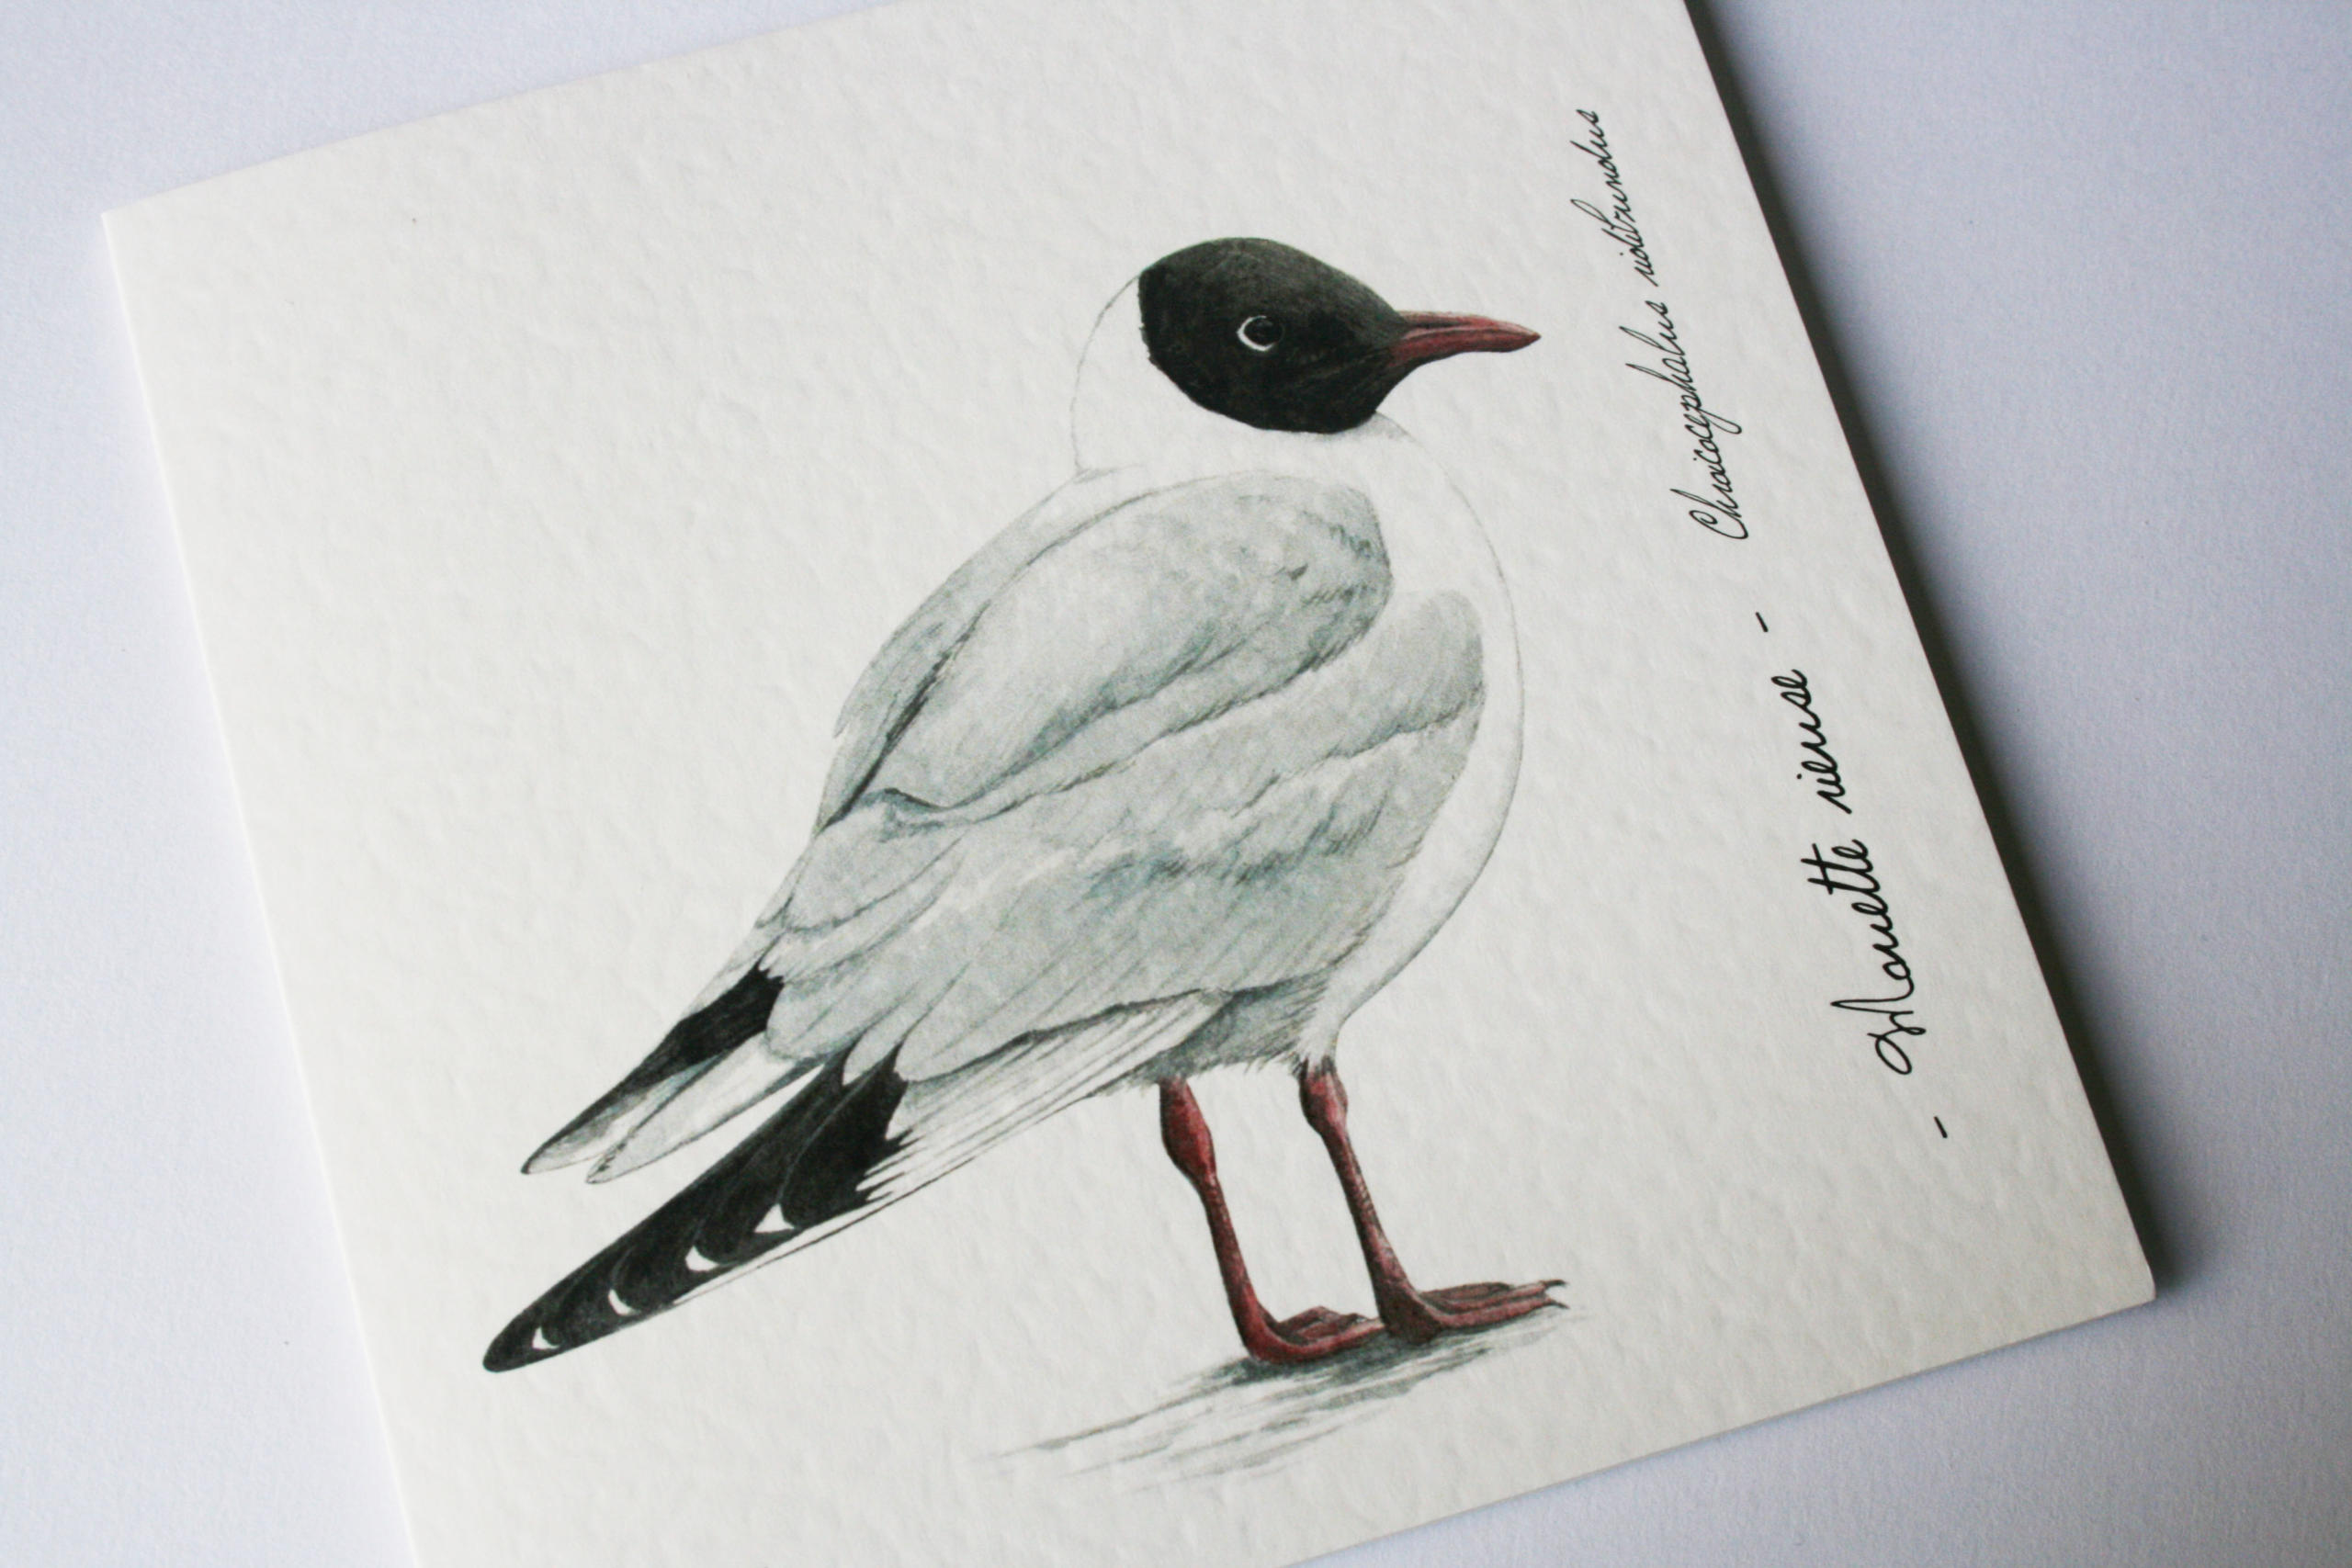 mouette rieuse 0532